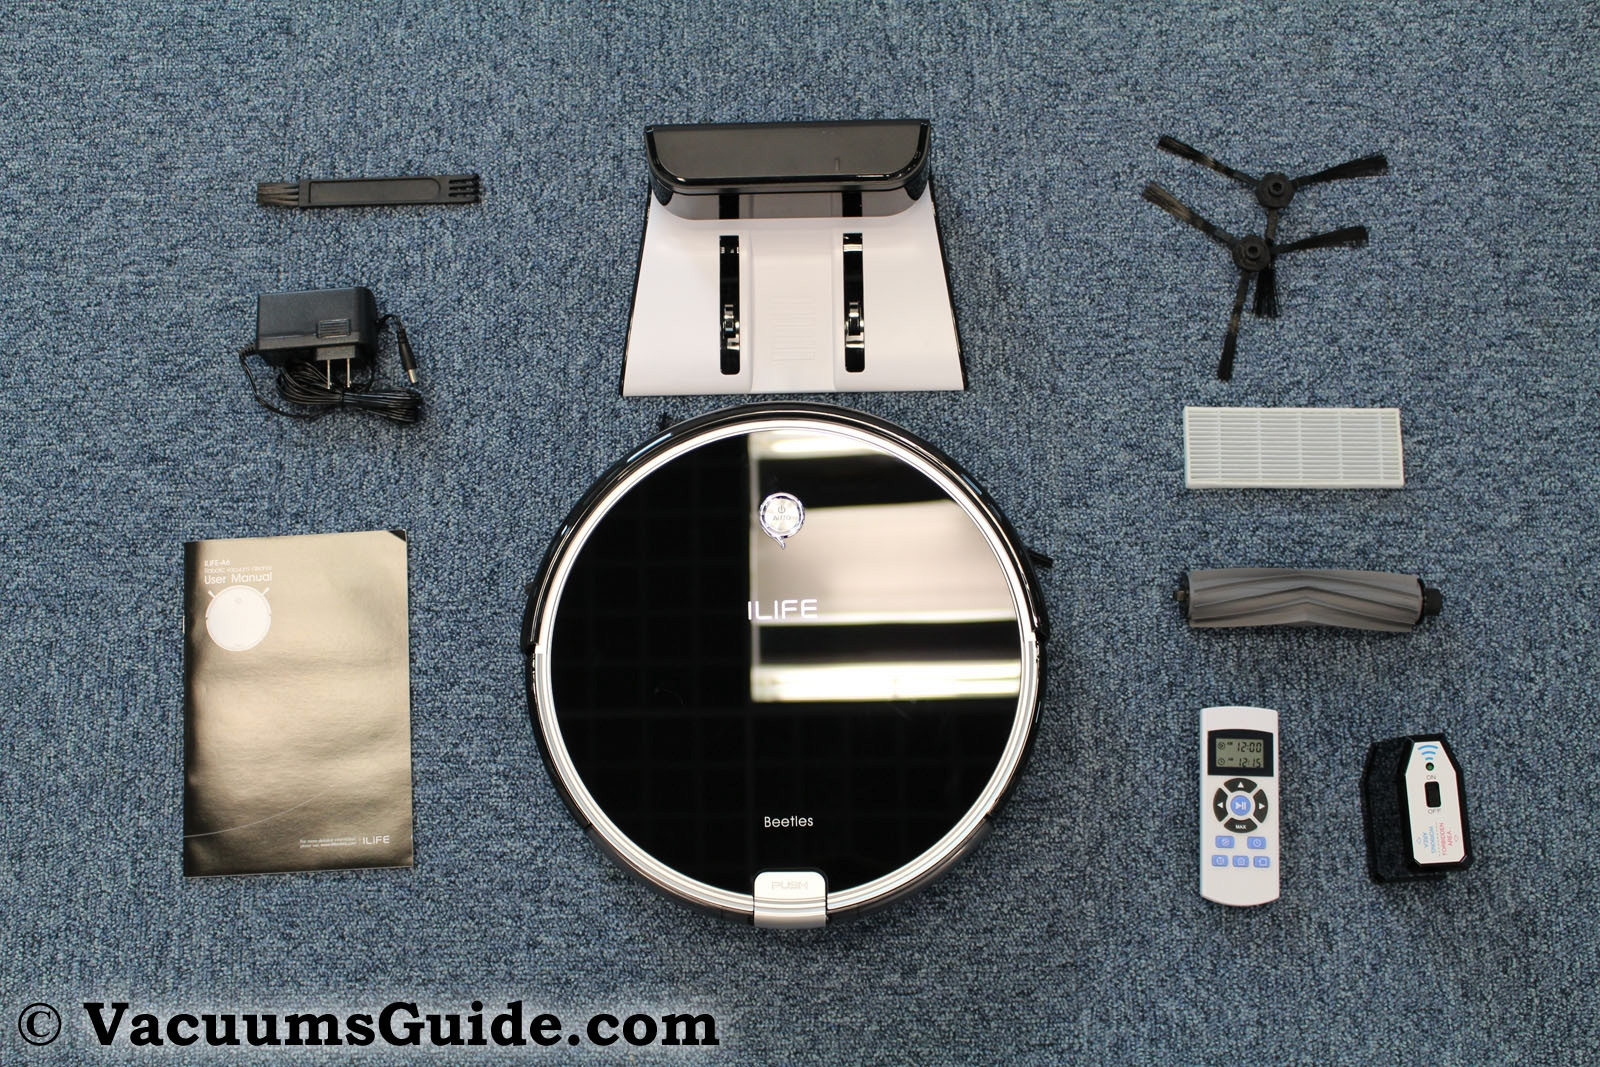 Ilife A6 package contents